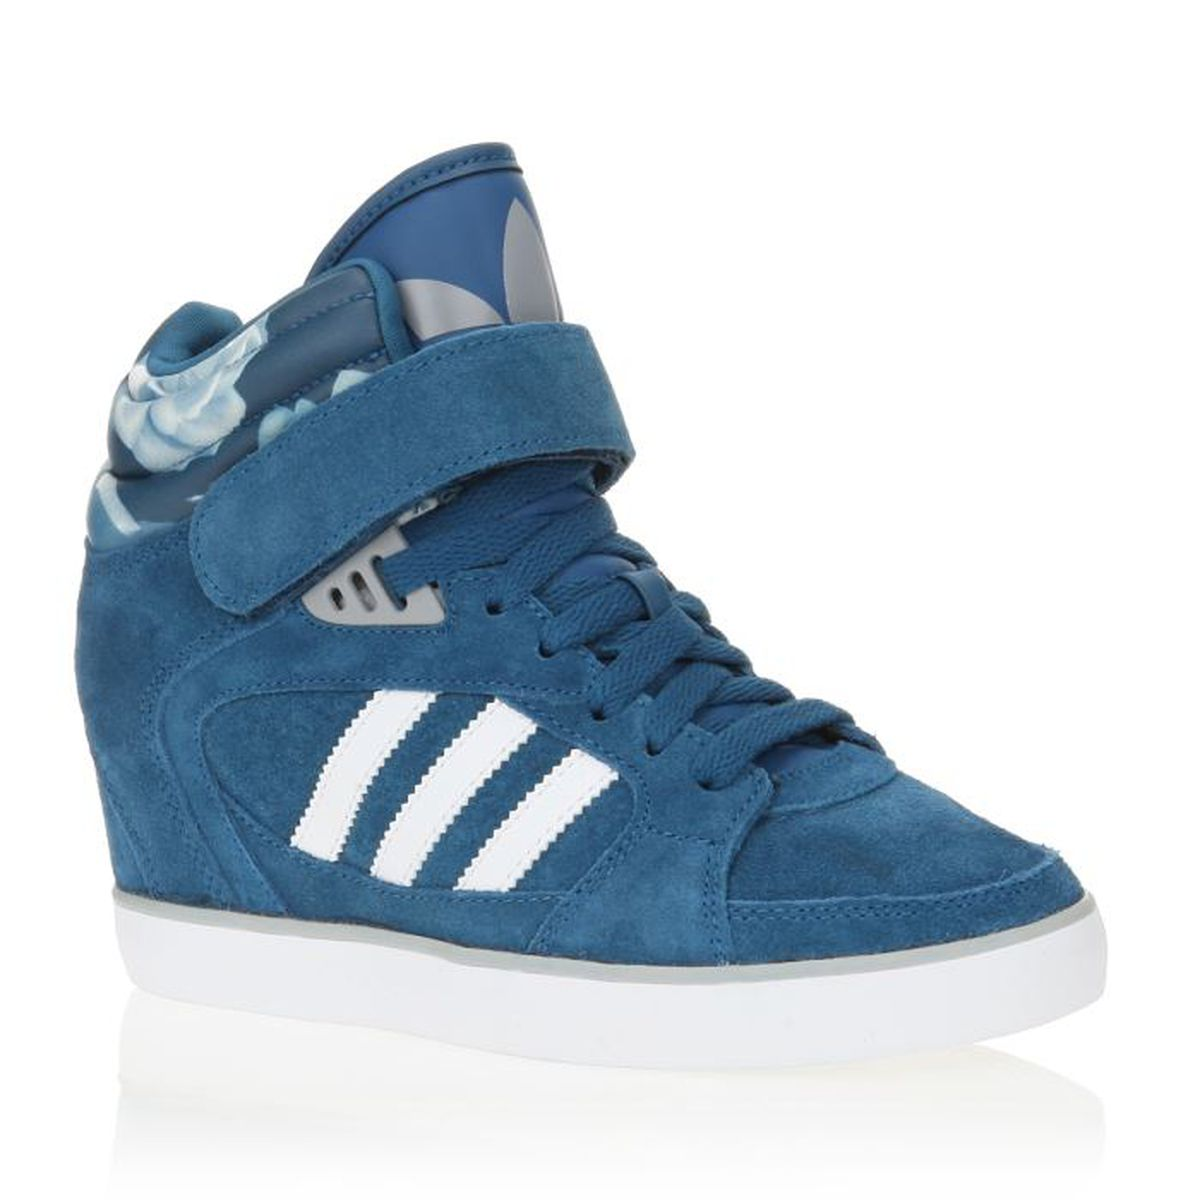 adidas originals baskets amberlight w femme,Adidas Originals